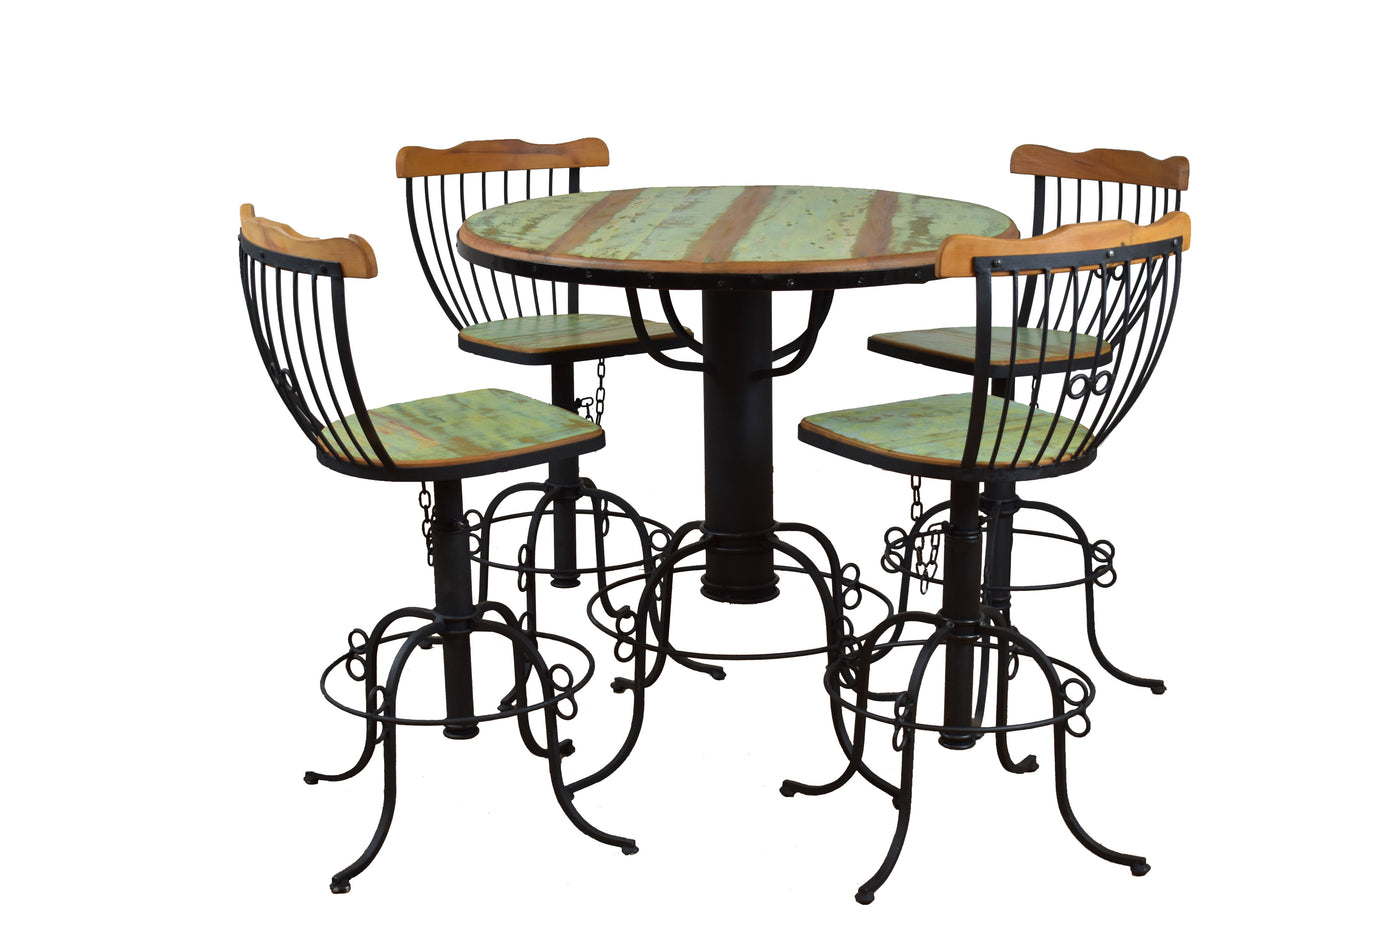 Bistro table dining set industrial dining set wrought iron peroba peroba · Reclaimed Wood ...  sc 1 st  Save The Planet Furniture & Reclaimed Wood Bistro Set